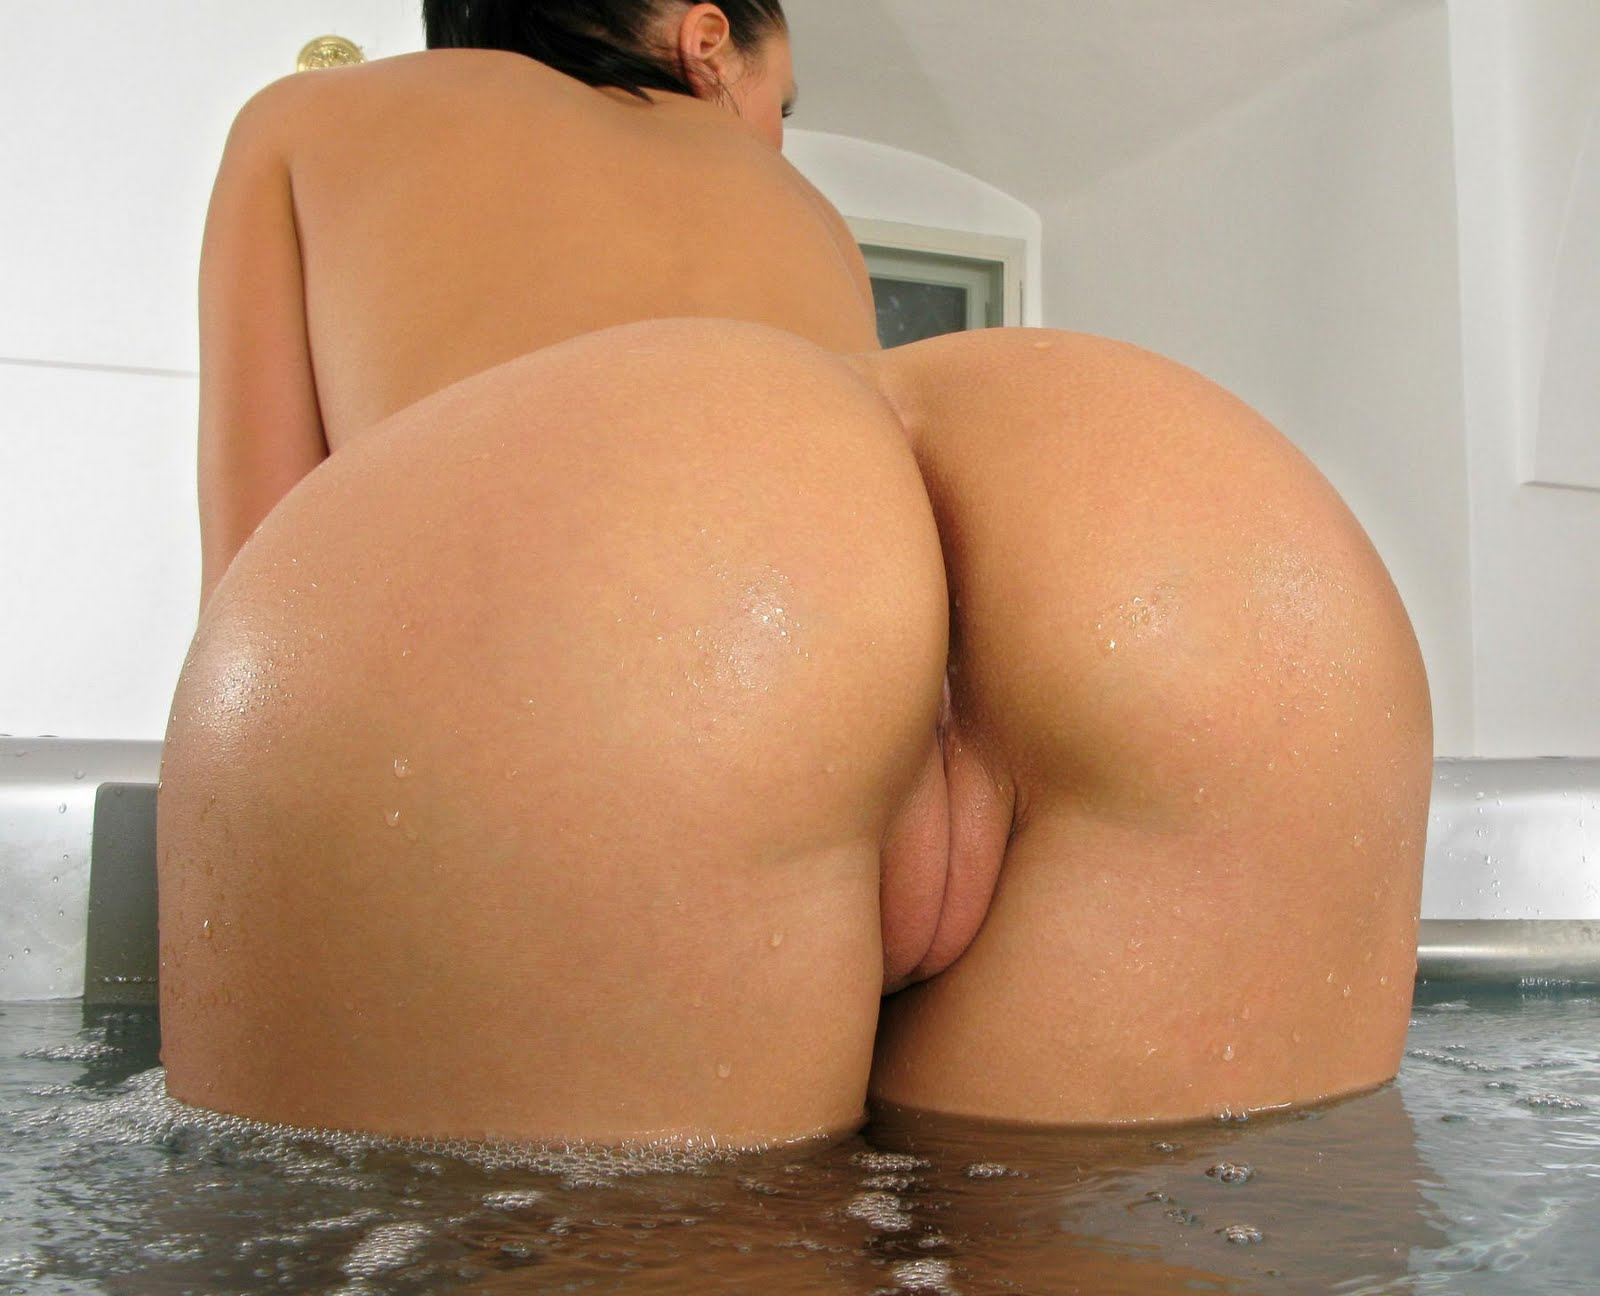 big ass woman nude beautiful